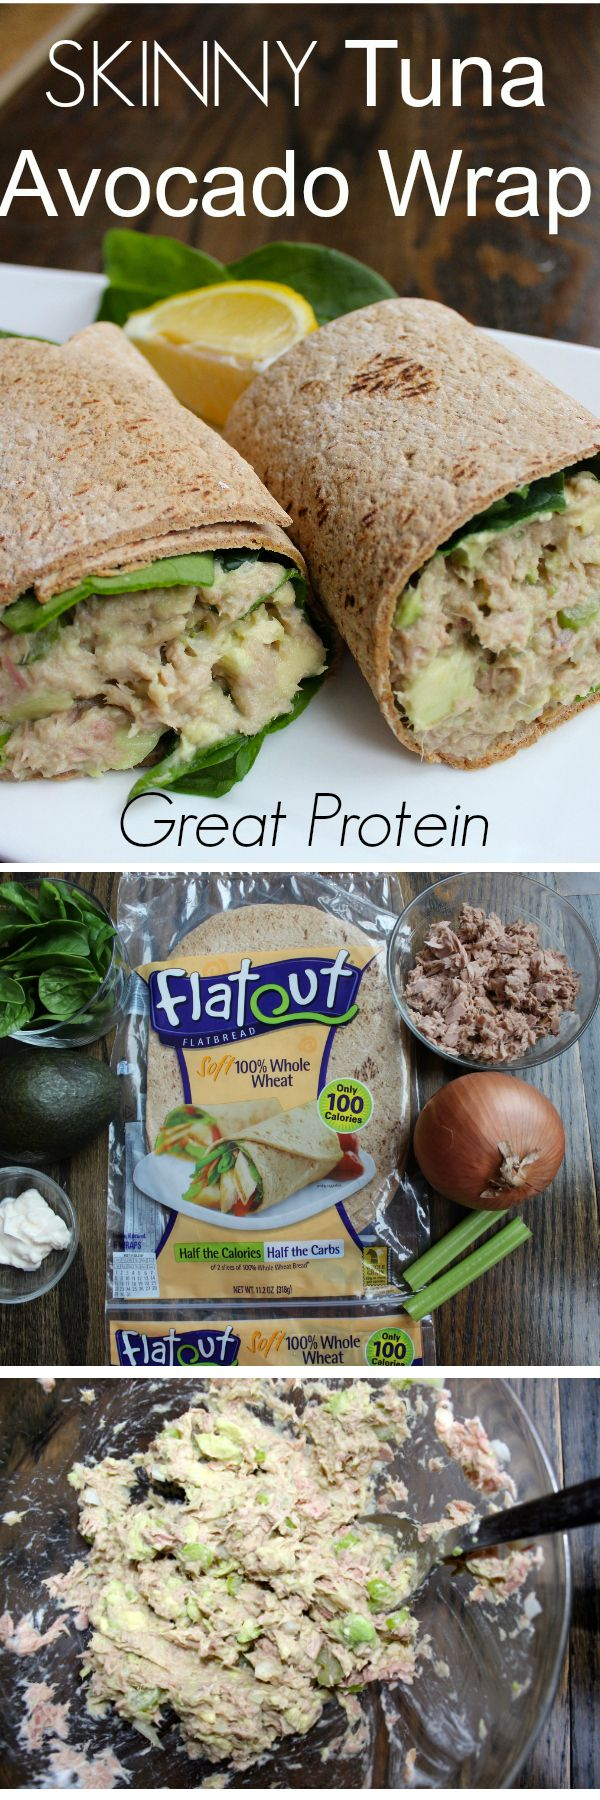 Skinny Tuna Avocado Wrap will satisfy with the protein and delicious taste. Super simple ingredients! ad